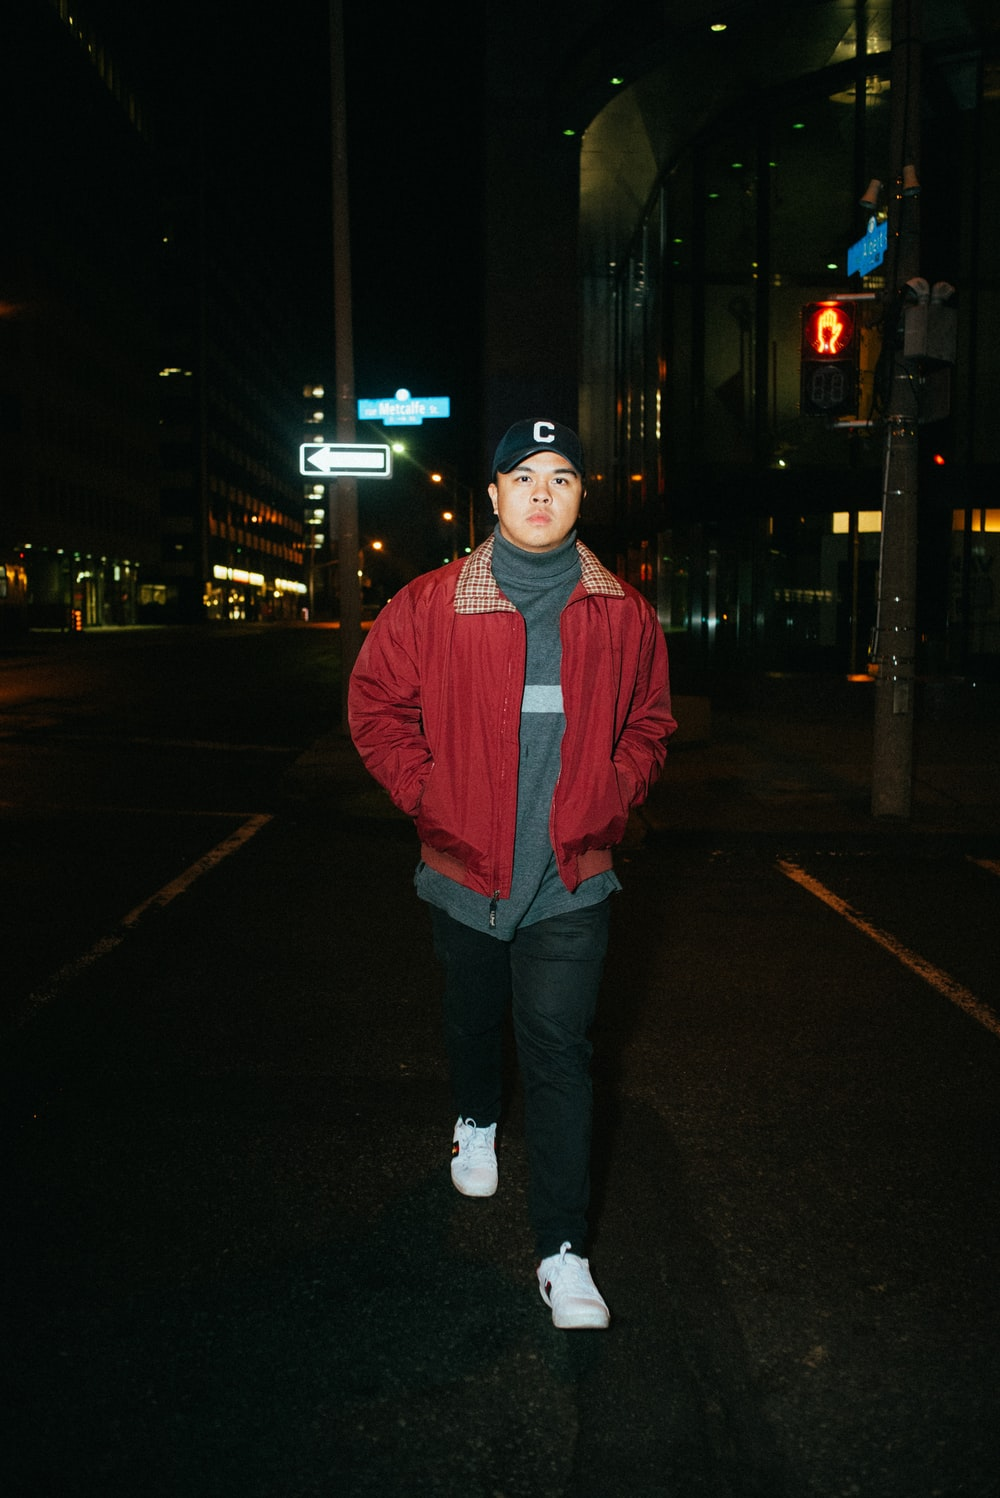 man in red jacket standing on sidewalk during night time